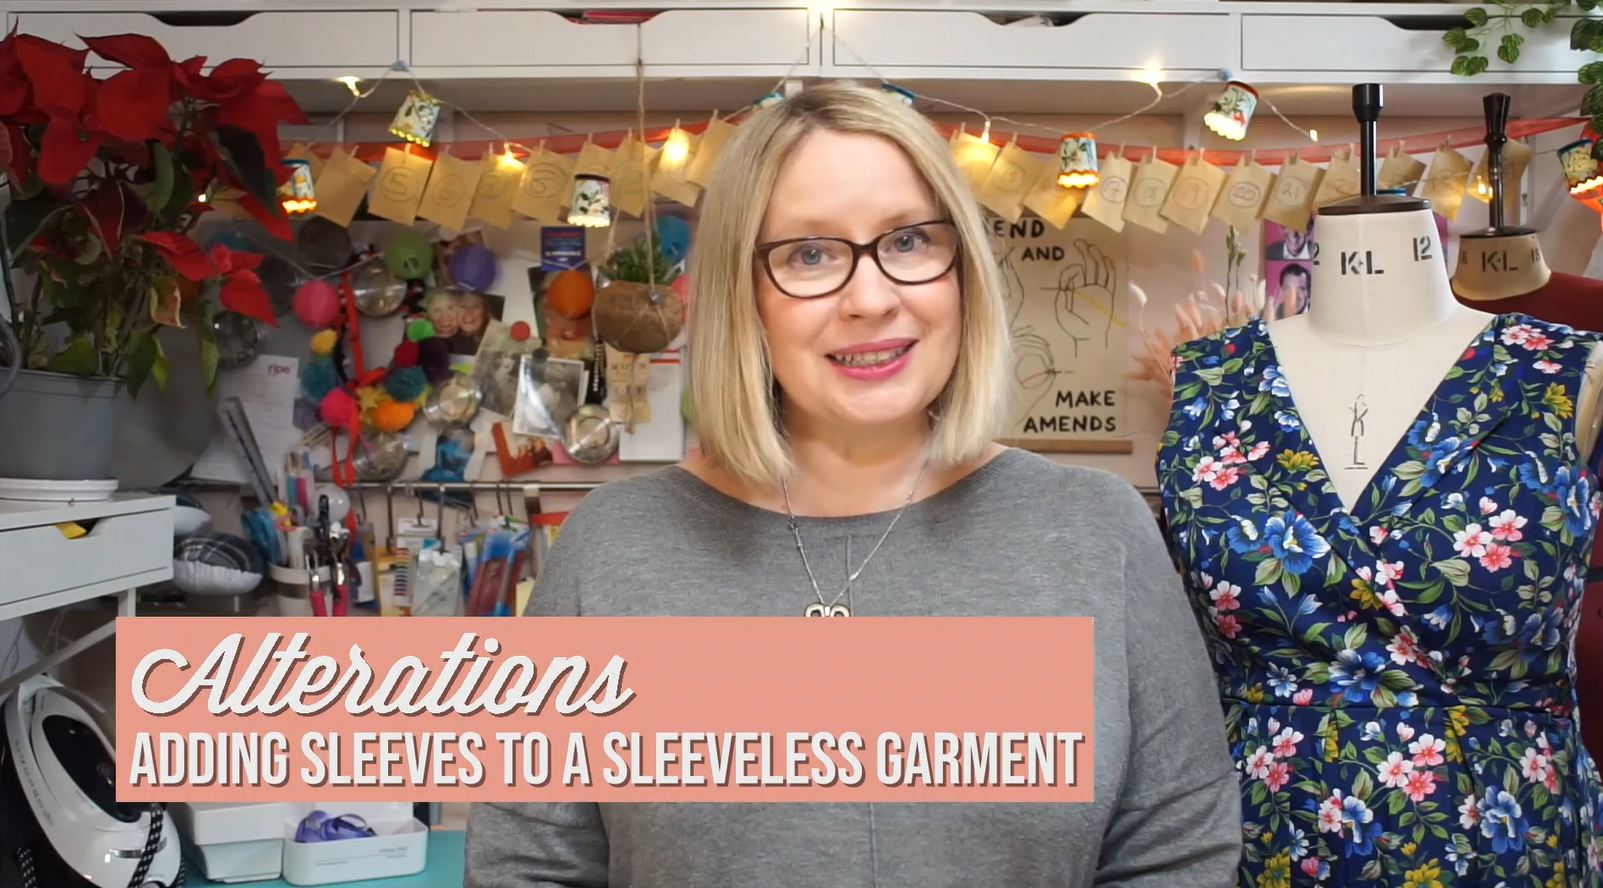 Vimeo on demand Lesson - Adding sleeves to a sleeveless garment